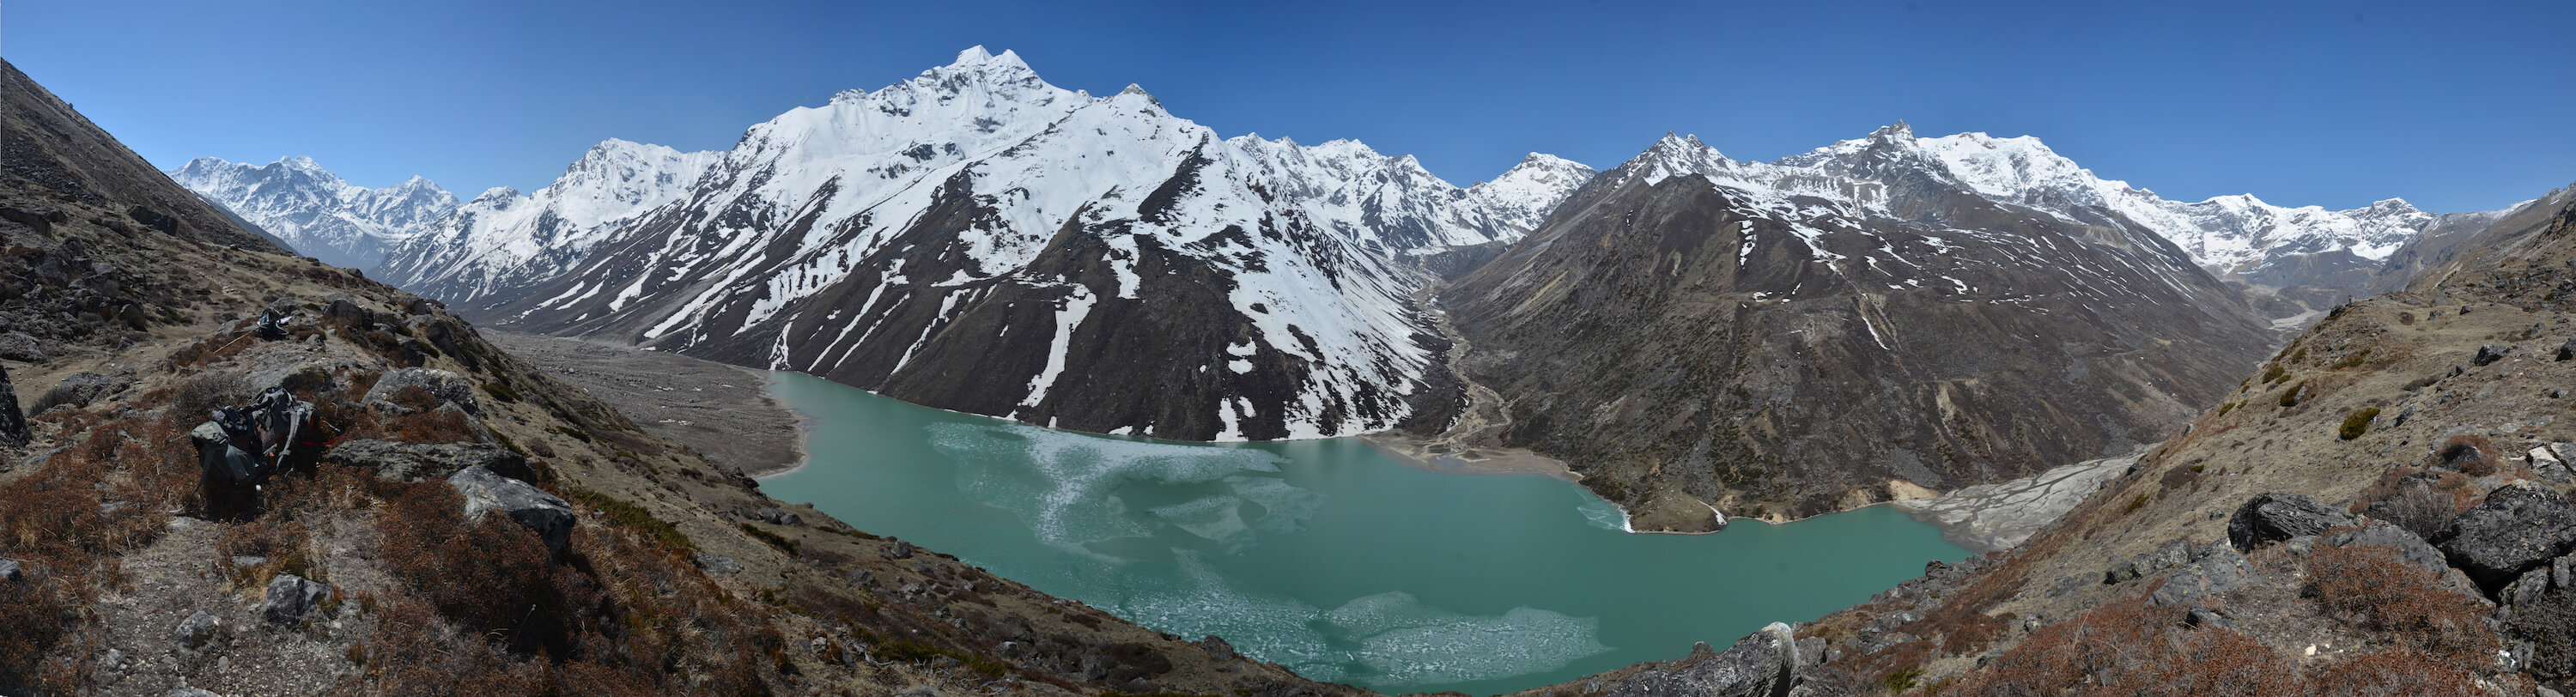 Tracing past glacial floods in Kangchenjunga